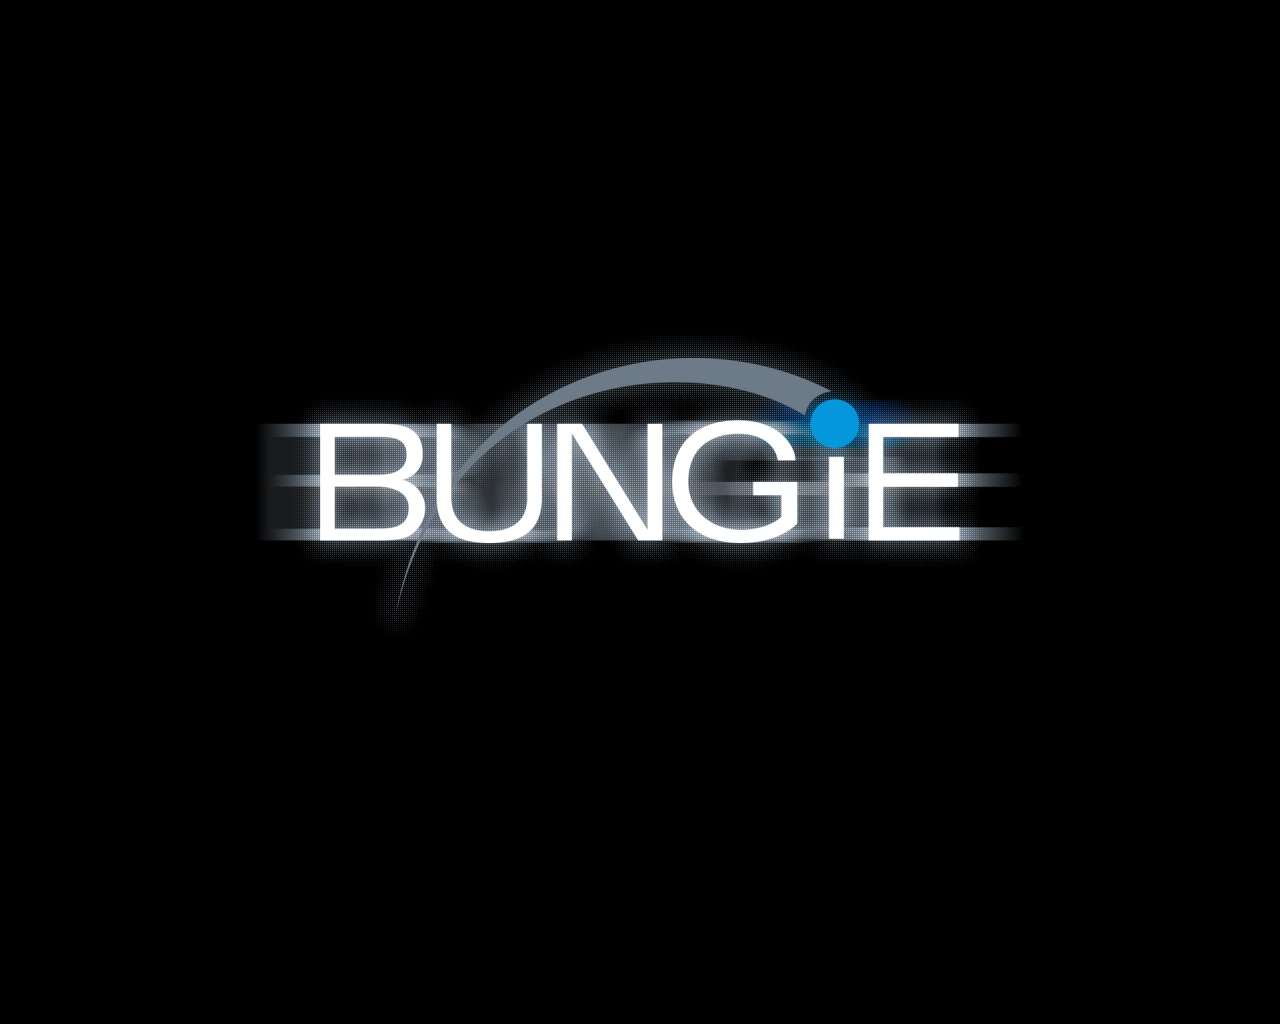 Under the terms of the deal, Bungie will get royalties of between 20 ...